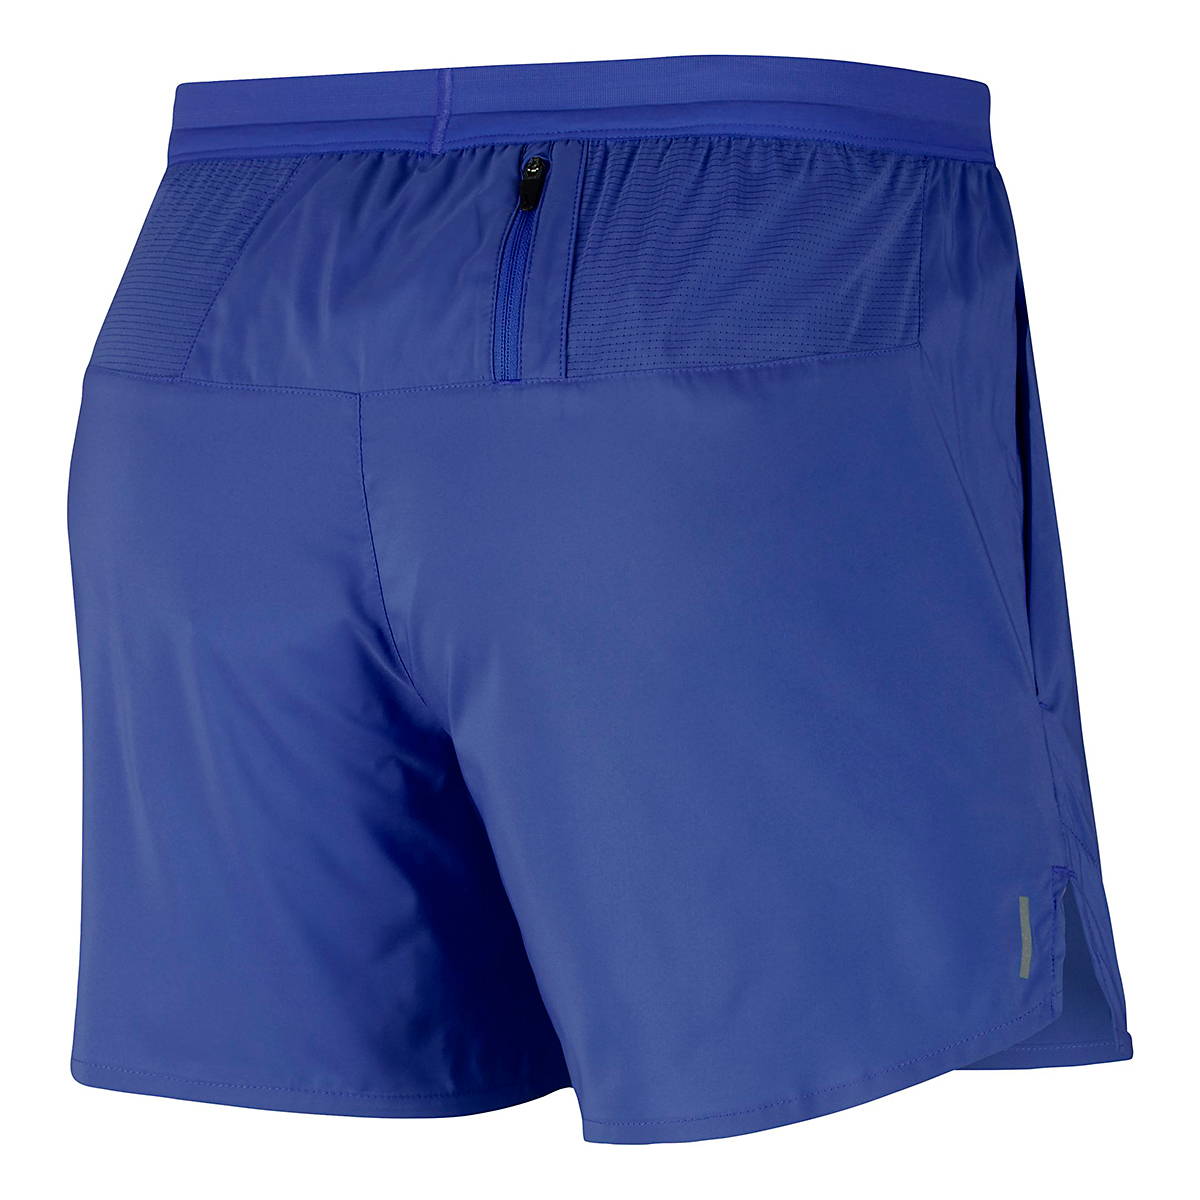 """Men's Nike Flex Stride 5"""" Brief Running Shorts - Color: Astronomy Blue - Size: S, Astronomy Blue, large, image 5"""